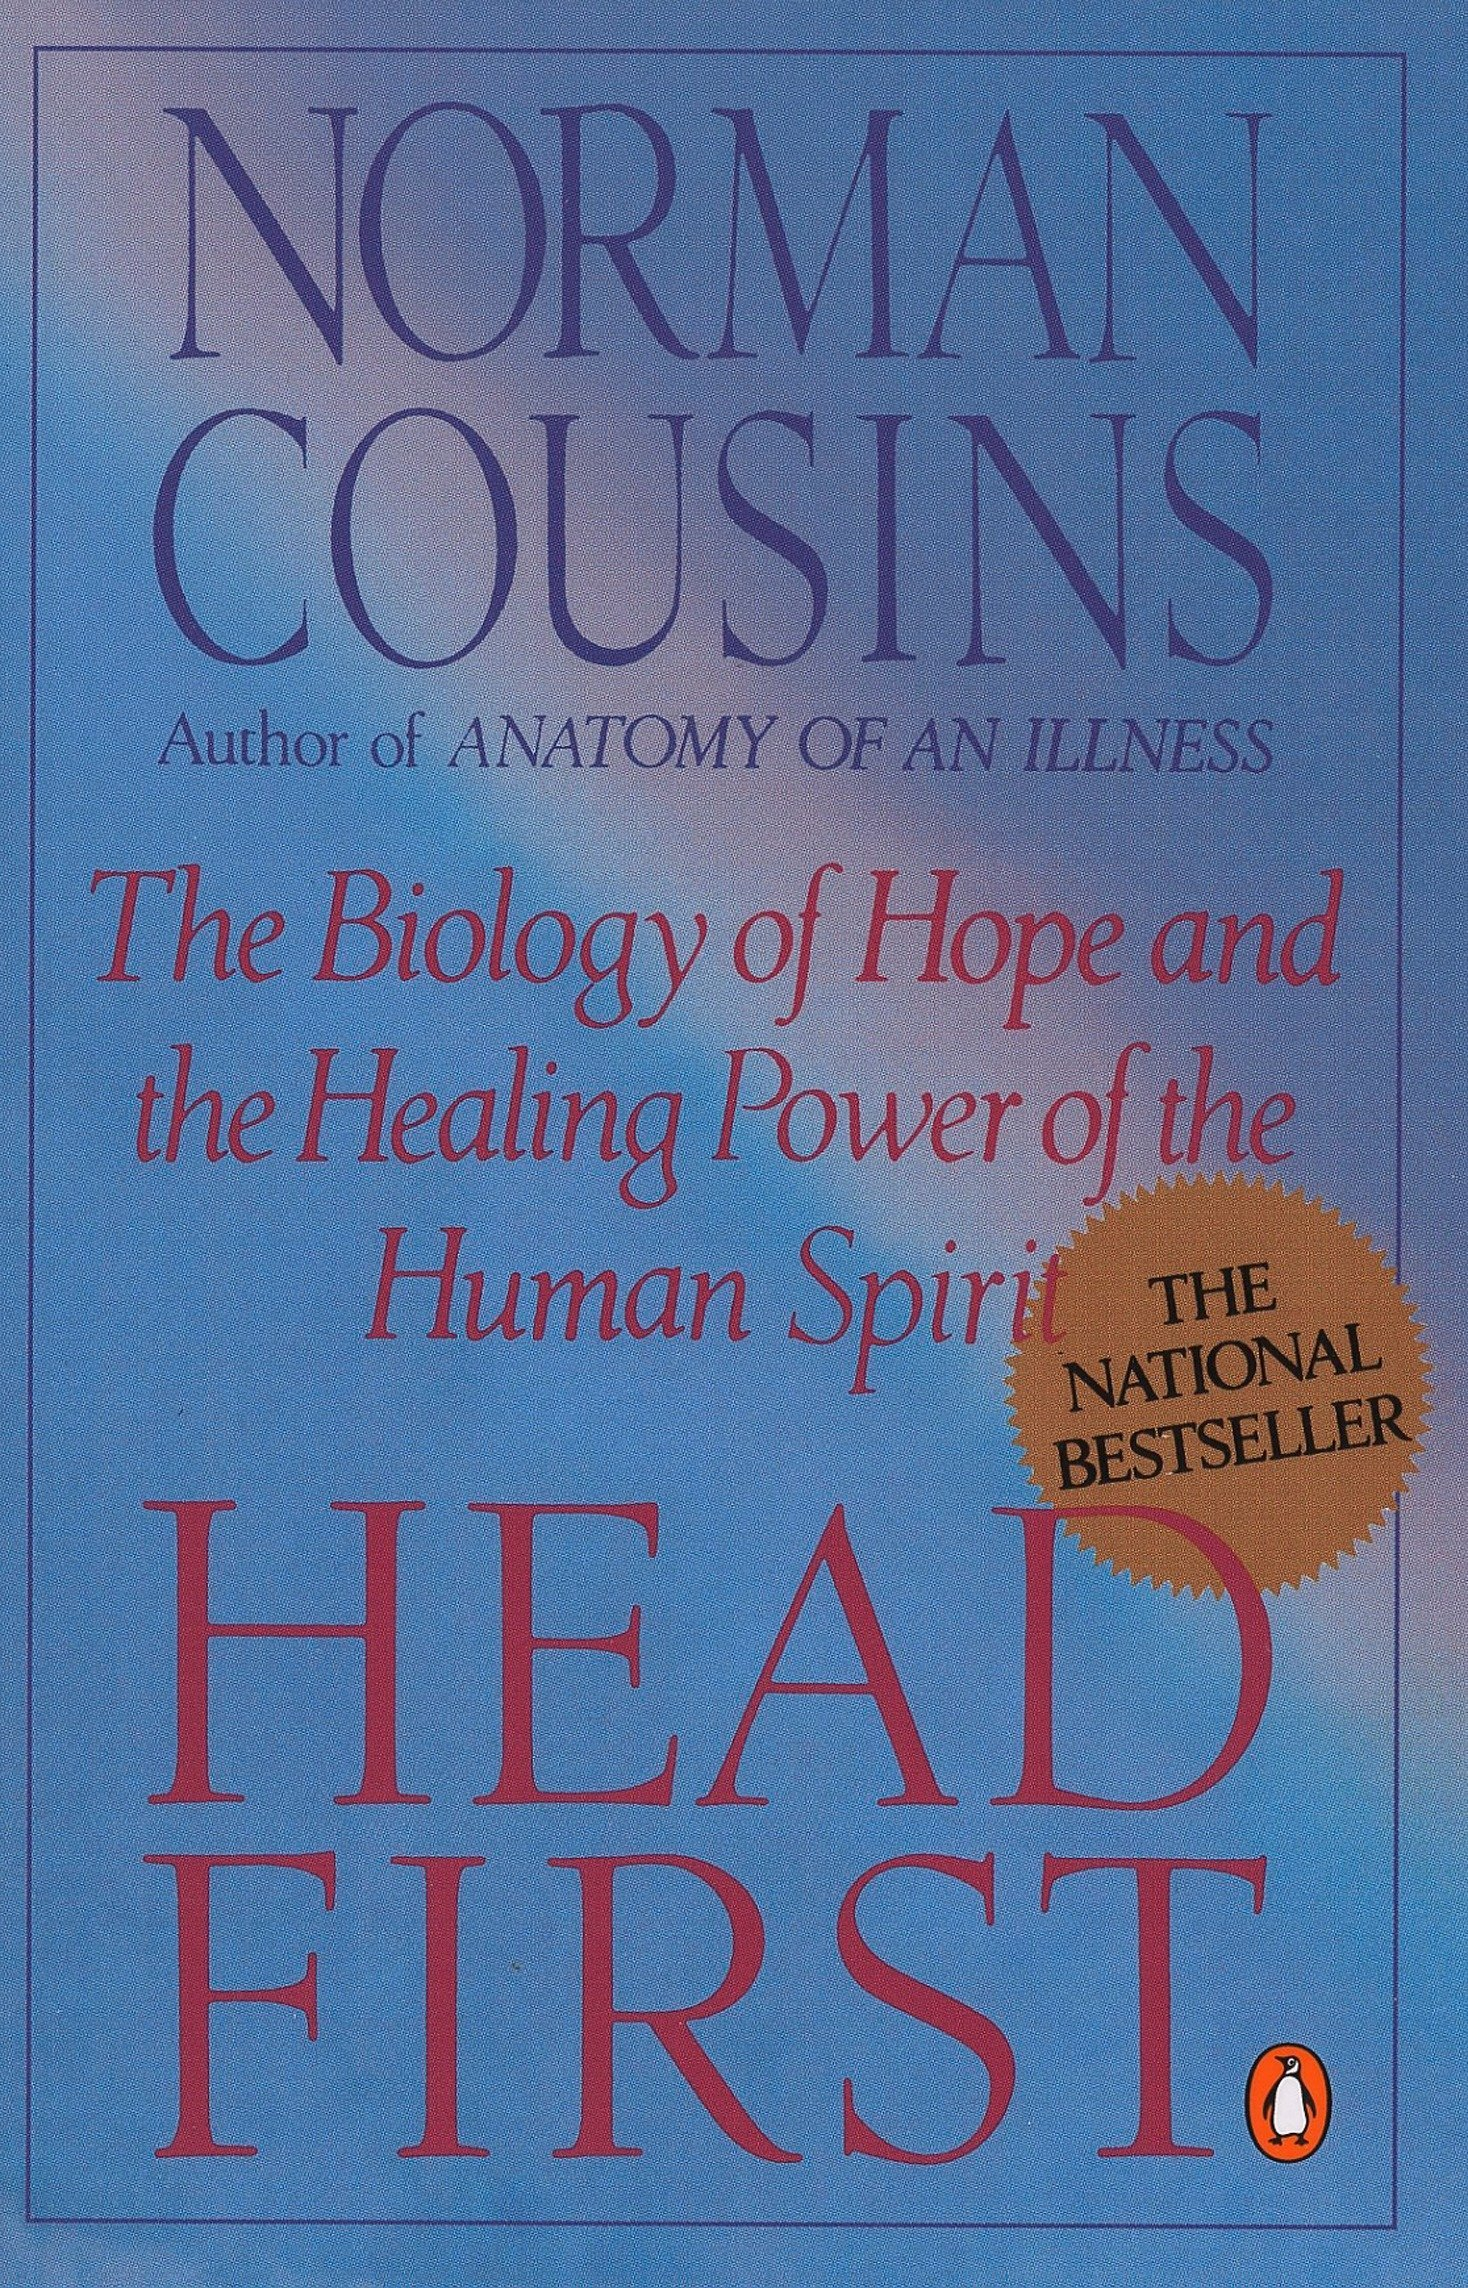 Head First: The Biology of Hope and the Healing Power of the Human ...